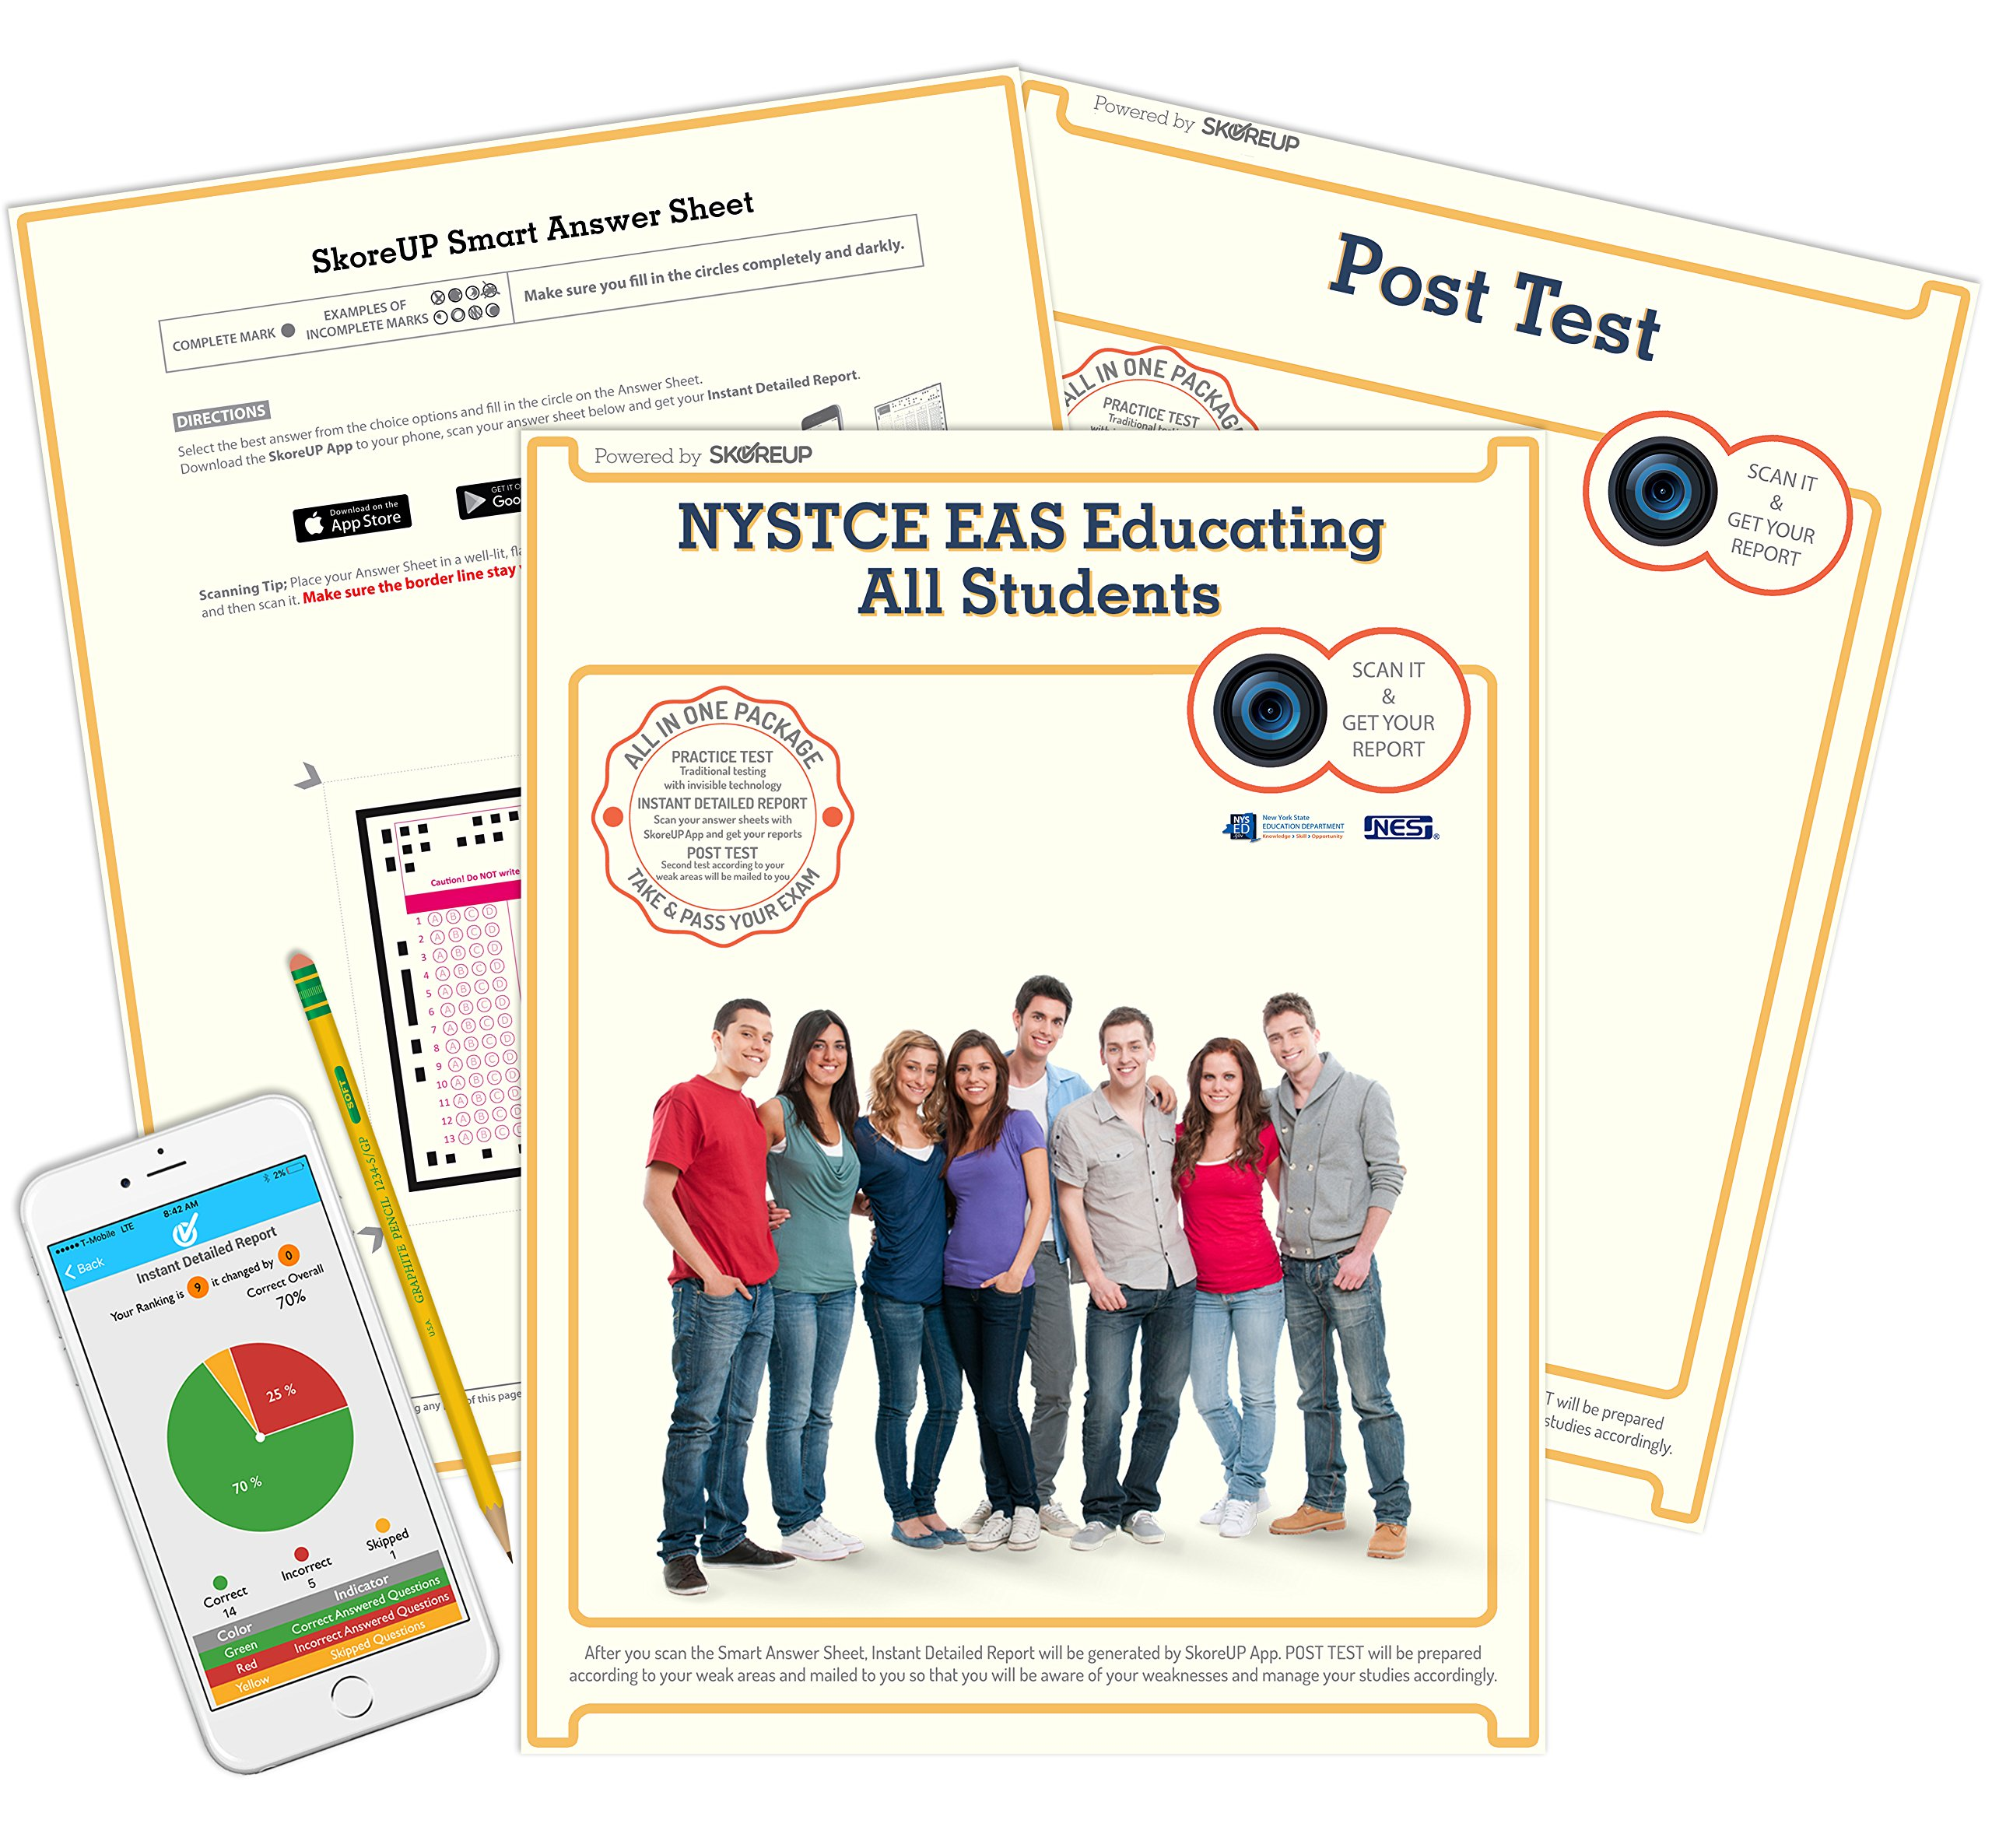 Nystce Eas Educating All Students Test New York State Teacher